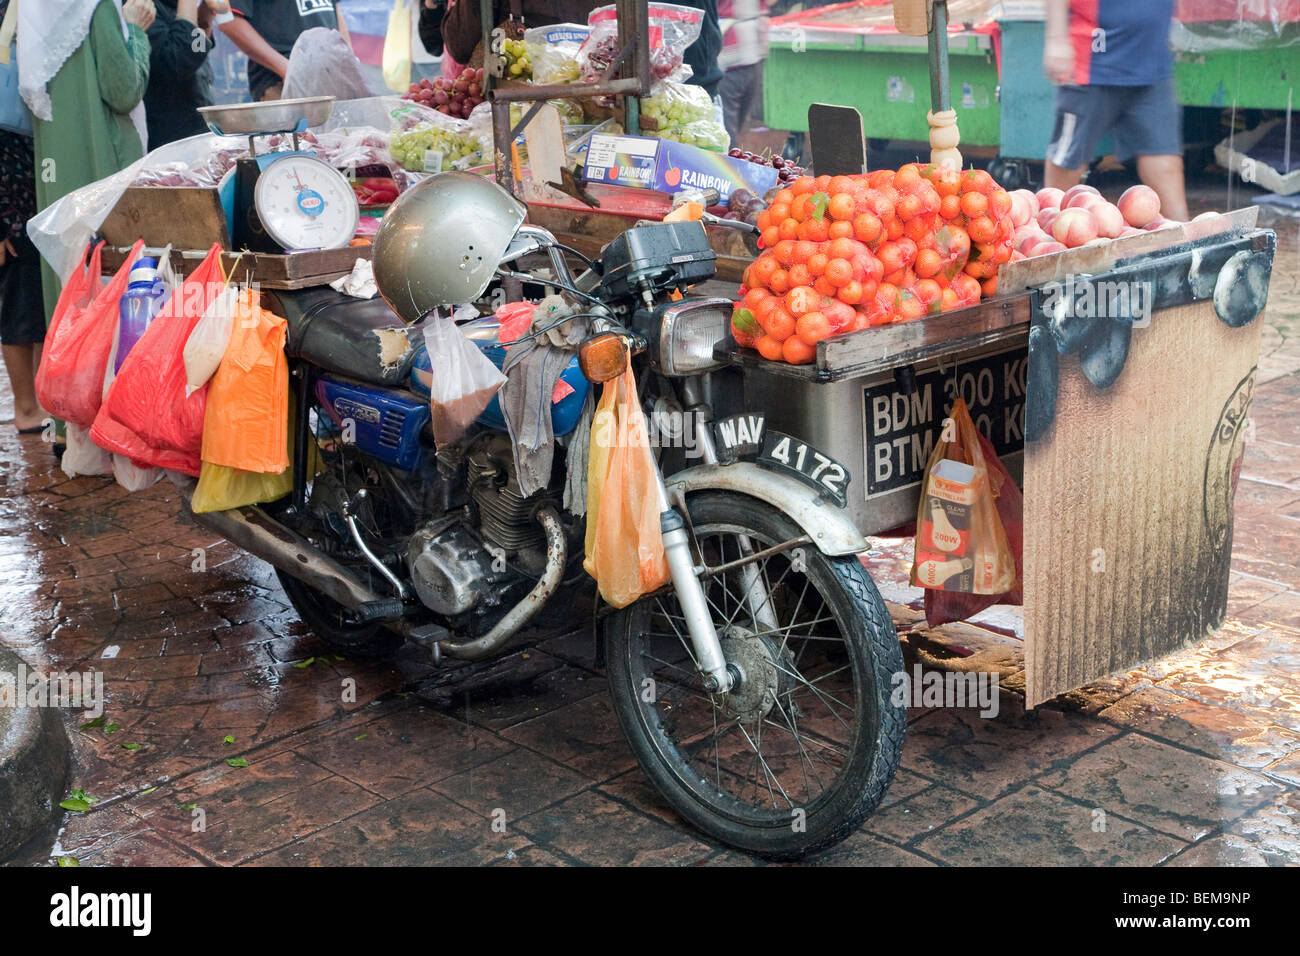 A motorcycle with a sidecar used as a fruit market stand in